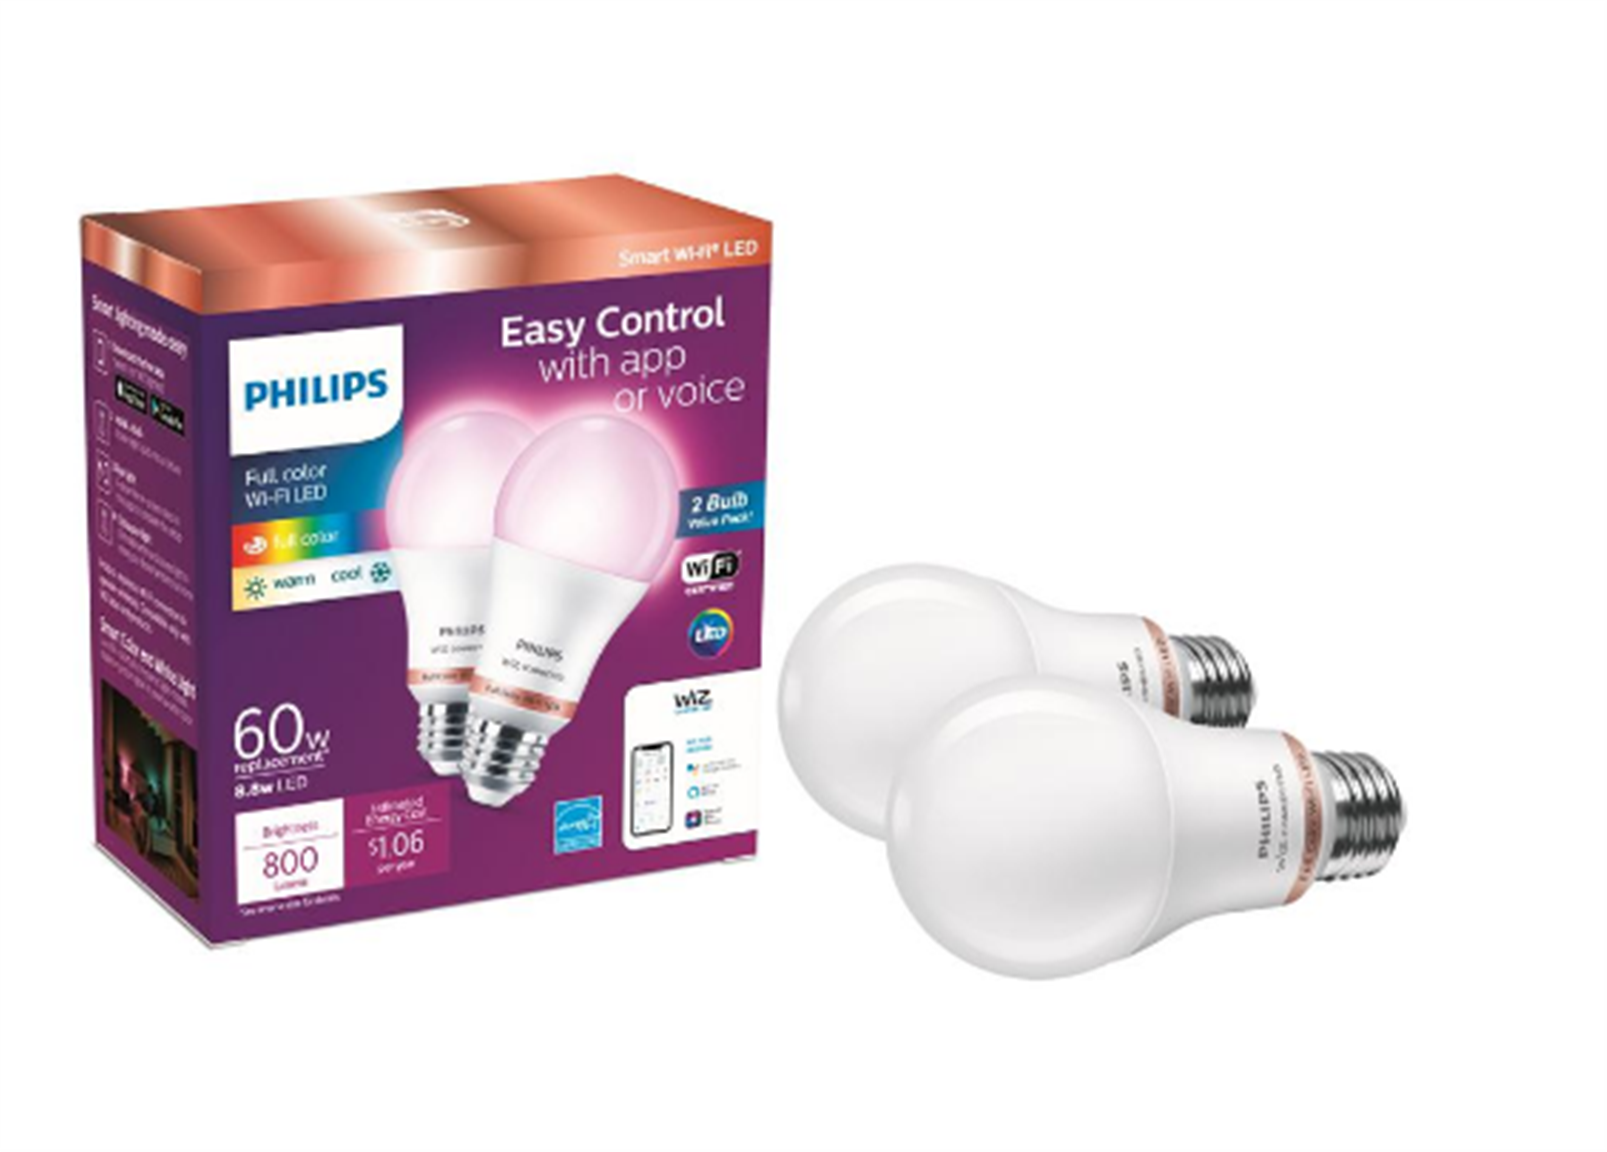 Home Depot – 2 Pk Philips Color & Tunable White A19 LED Dimmable Smart Wi-Fi Light Bulb Only $19.48 + Free Store Pickup!